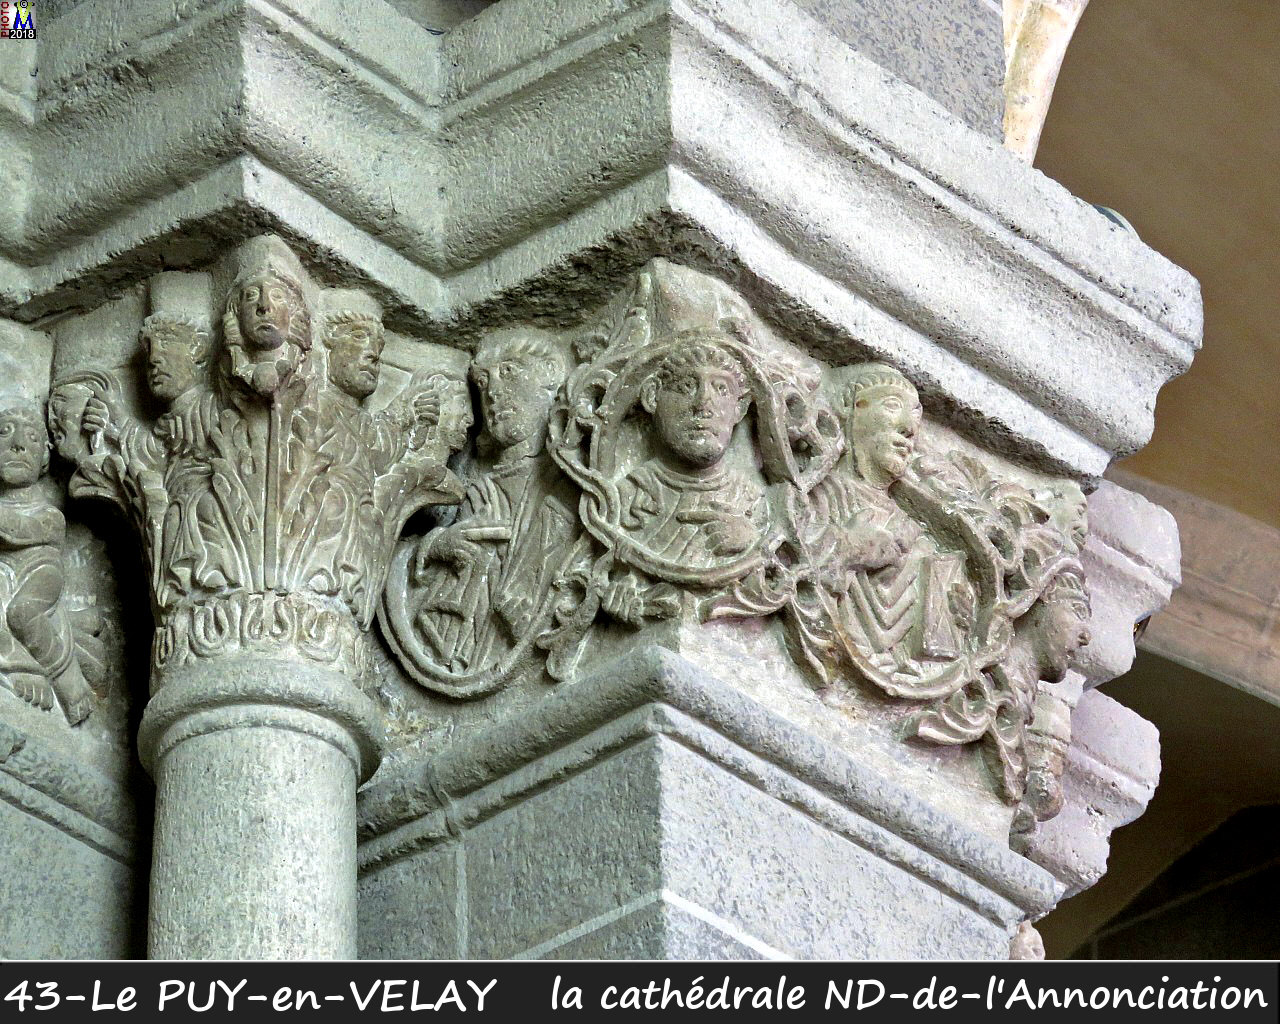 43PUY-EN-VELAY_cathedrale_242.jpg